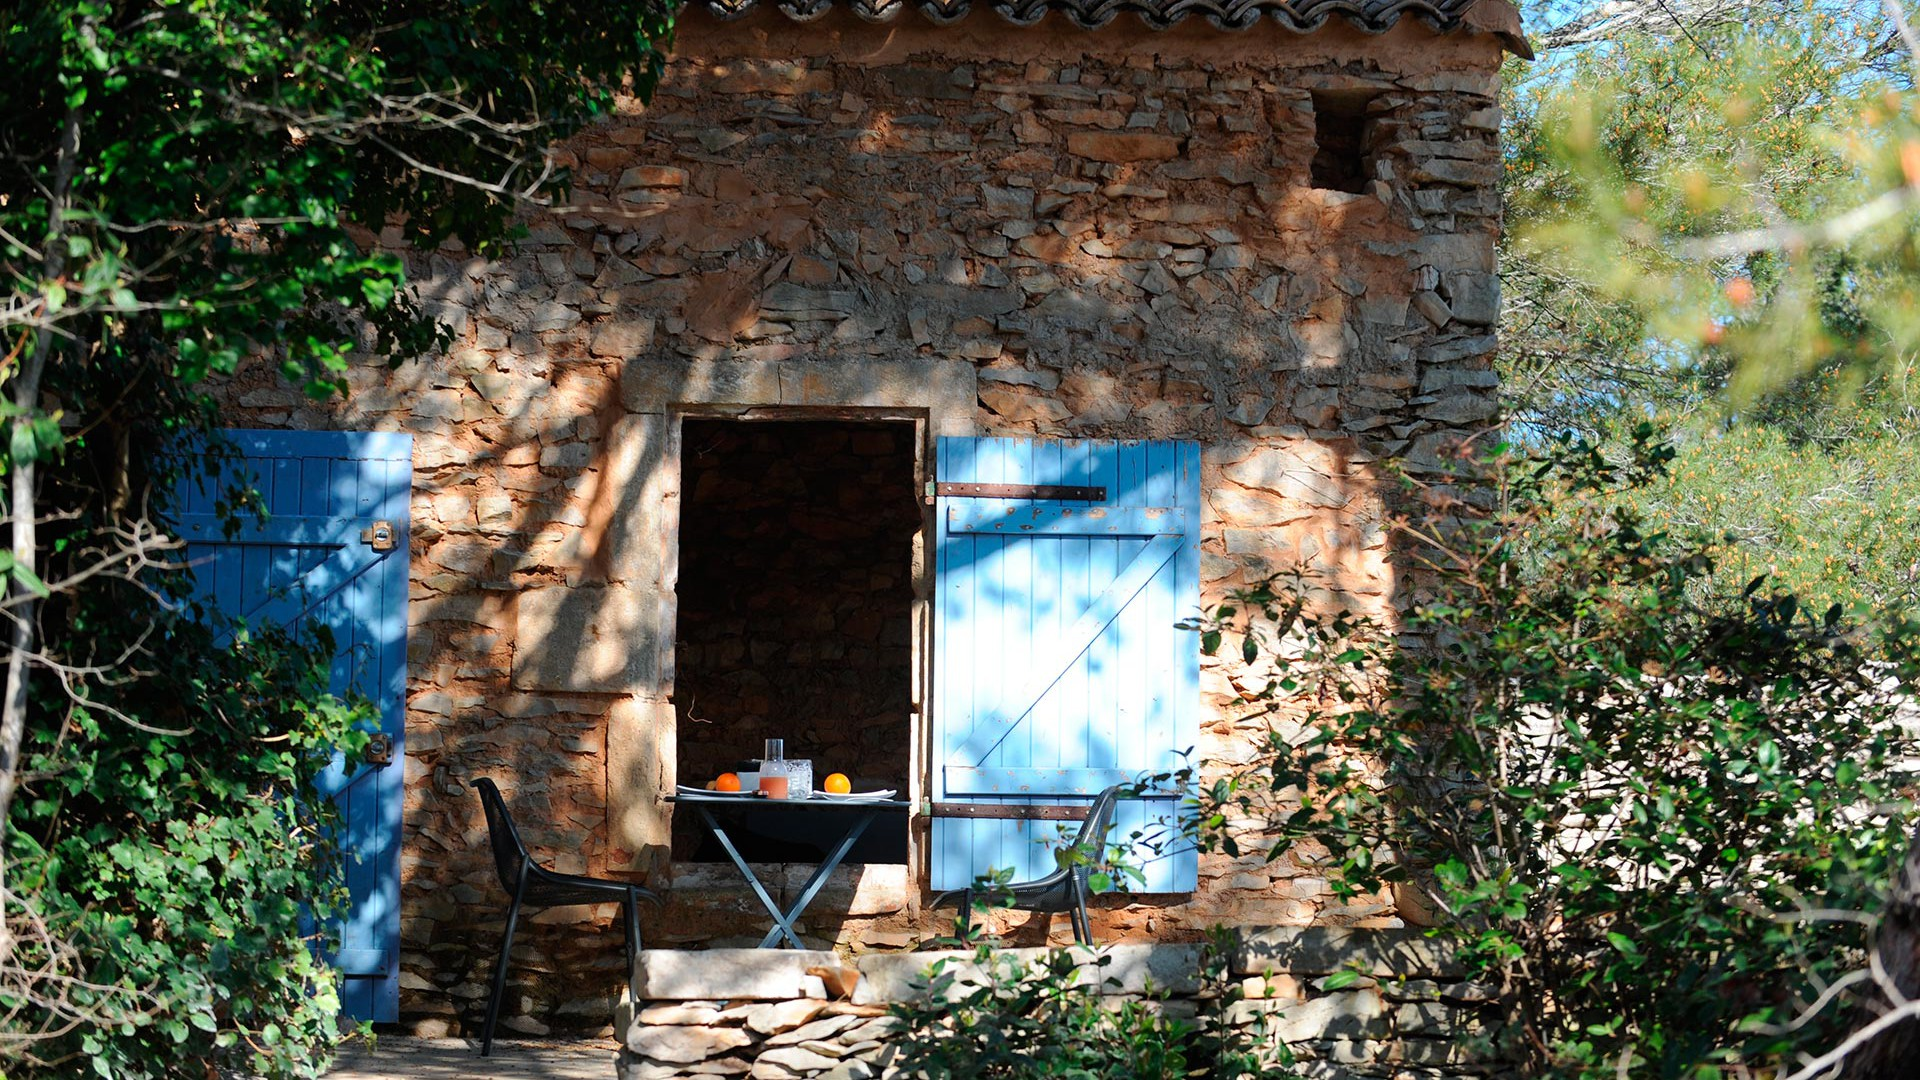 Bed and Breakfast and Spa Nimes in the Gard 3 lodges with pool